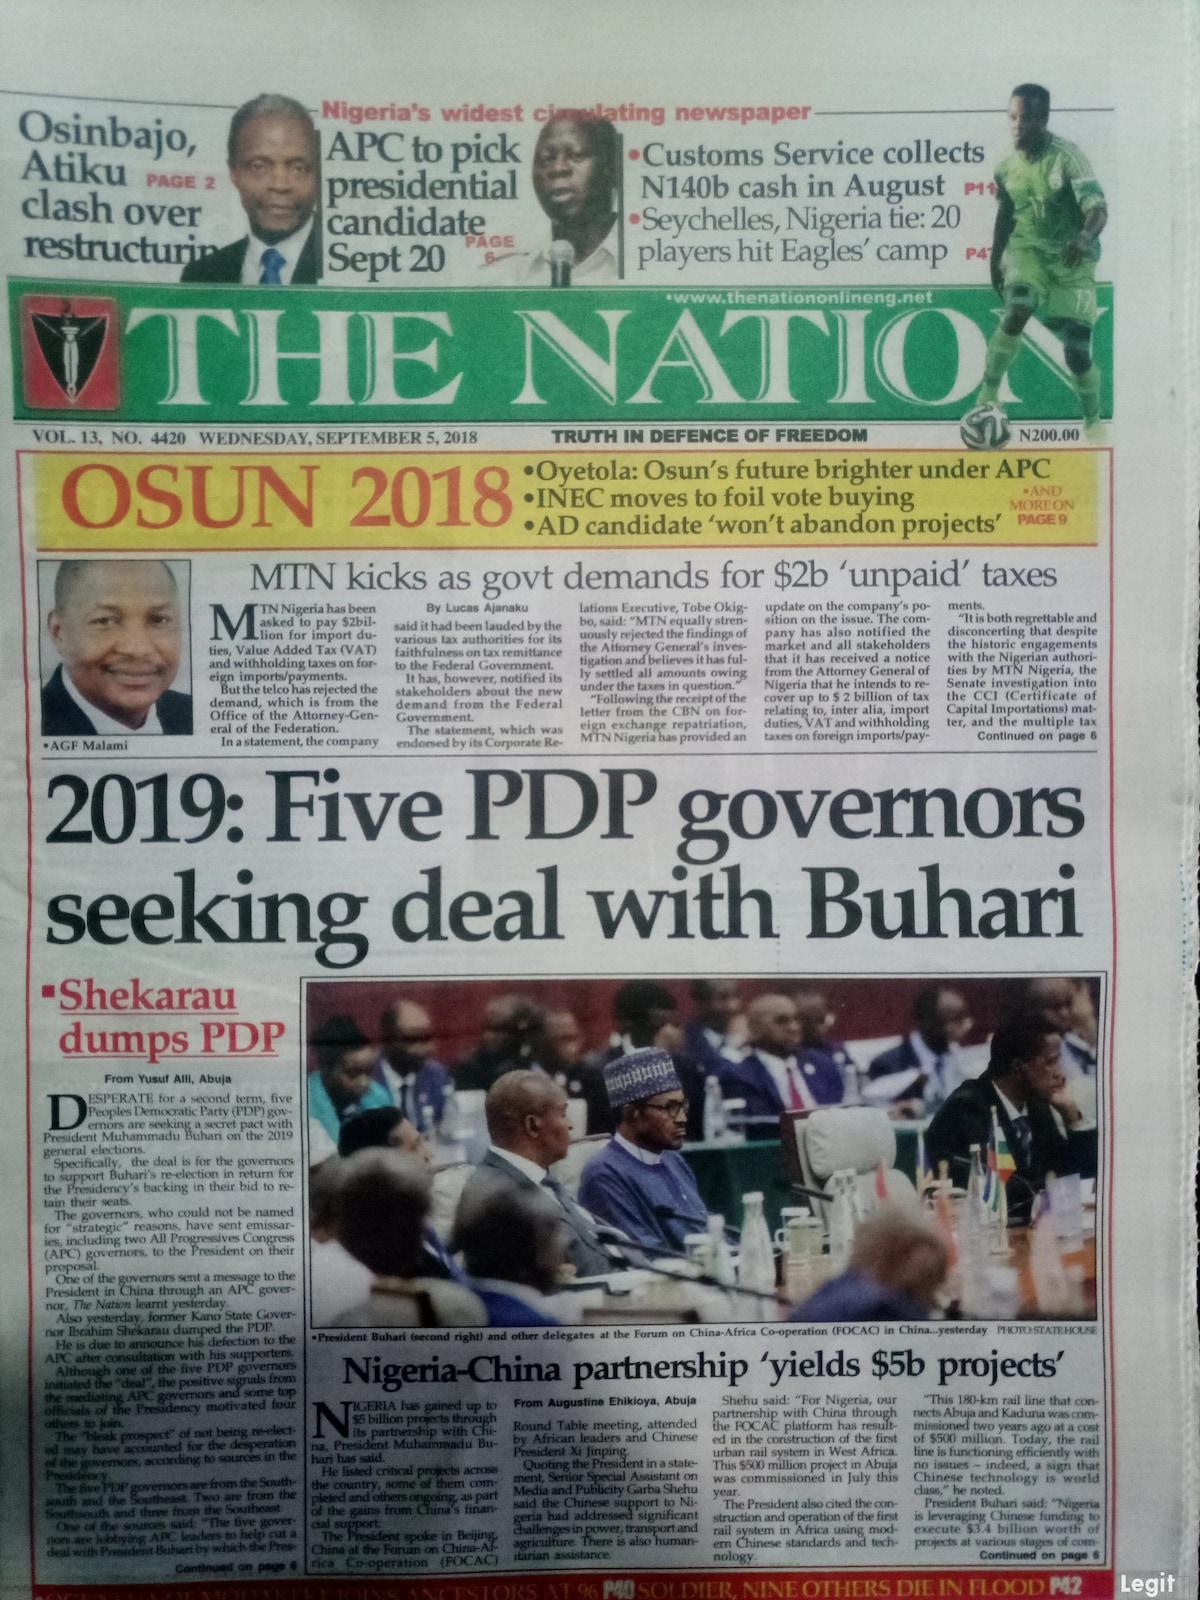 The Nation newspaper review for Wednesday, September 5.